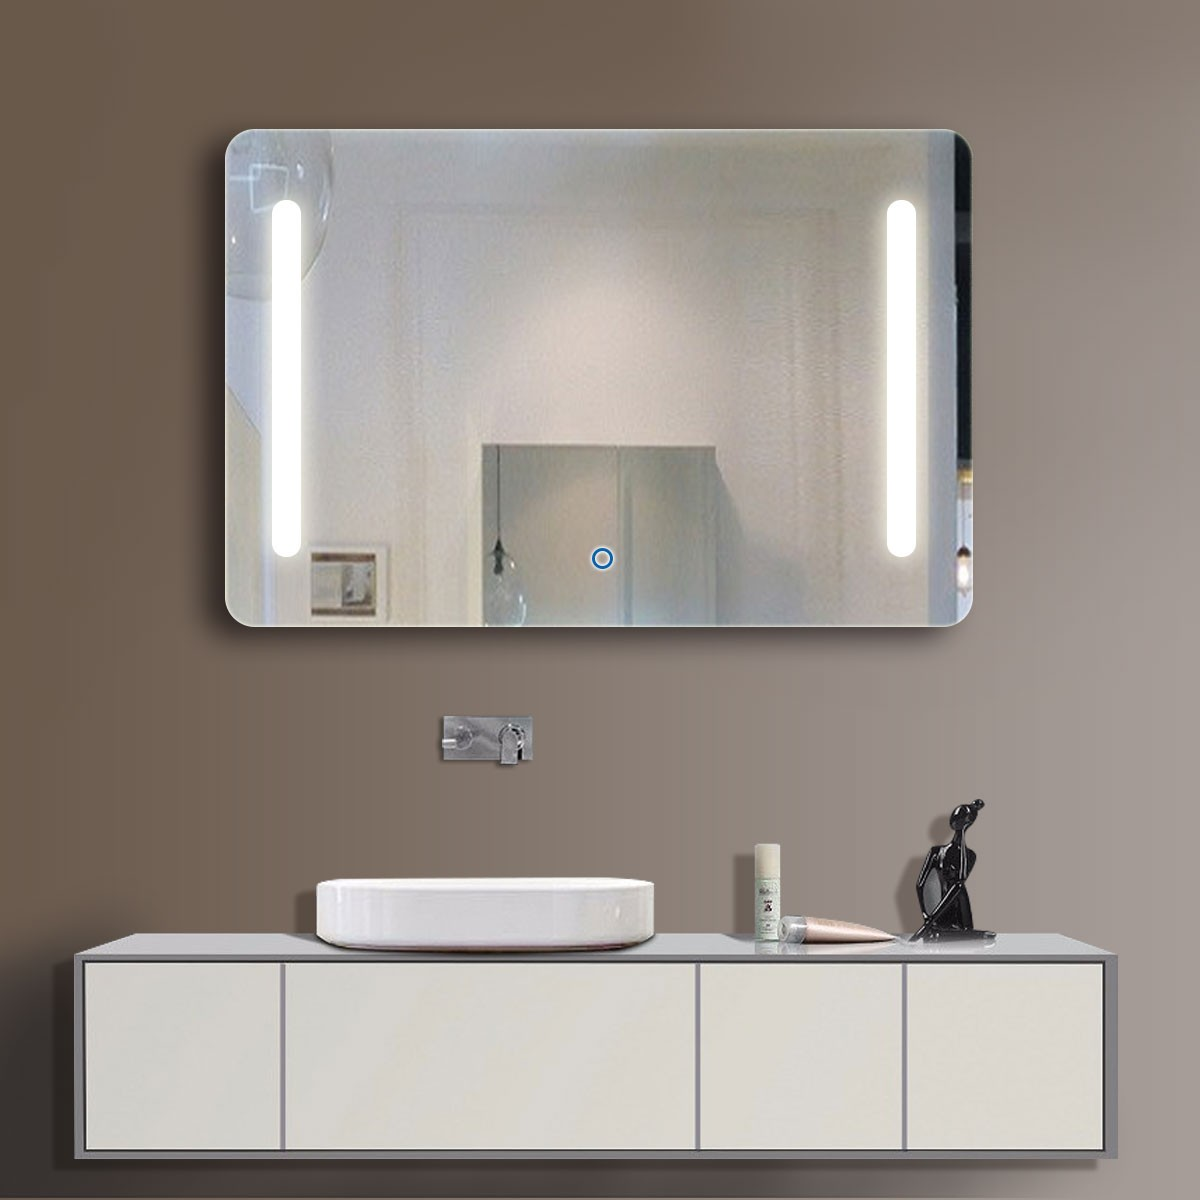 36 x 28 In Horizontal LED Bathroom Mirror with Touch Button (DK-OD-N027)